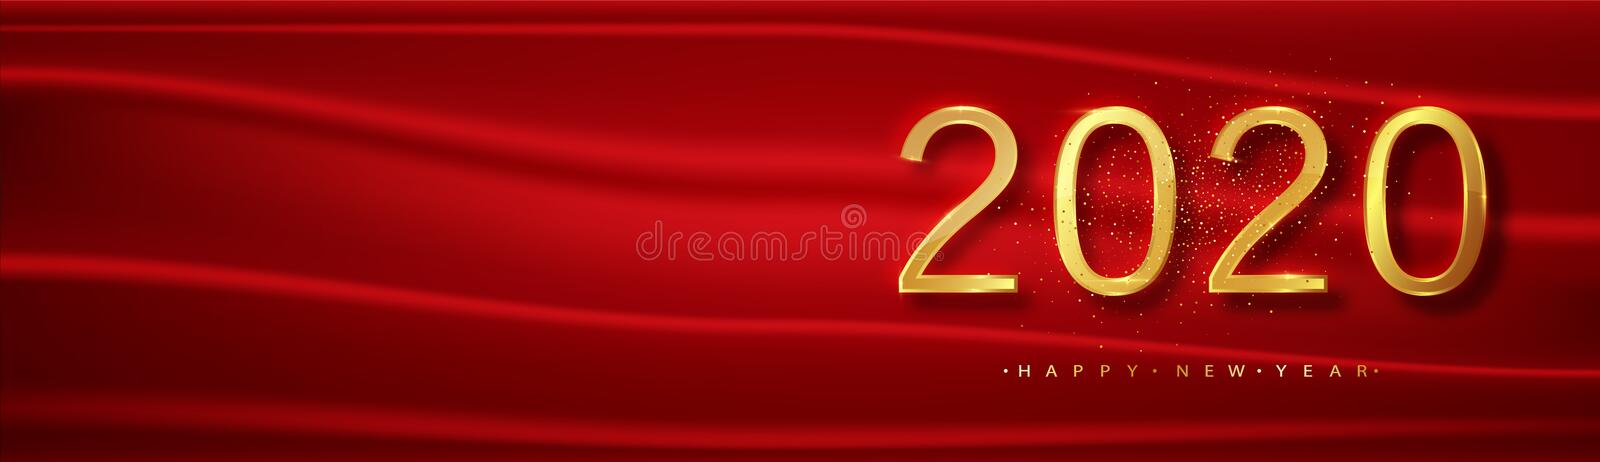 2020. Red Chrisrmas New Year background . Greeting card or poster with happy new year 2020 with gold glitter and shine vector illustration